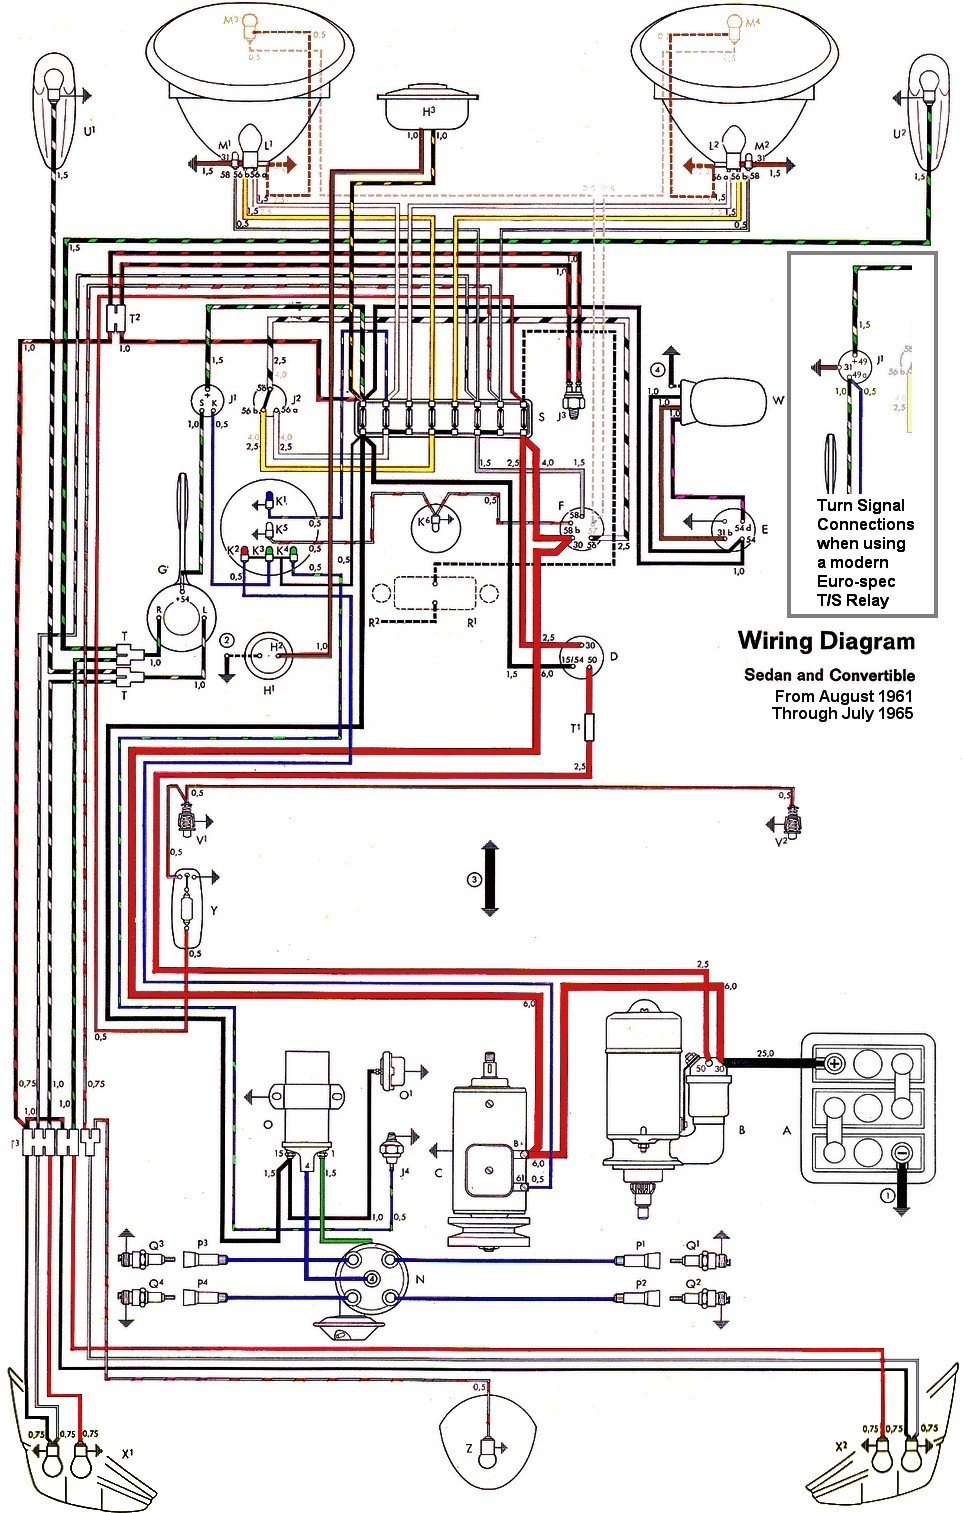 bug_62 65withinset thesamba com type 1 wiring diagrams 1970 vw bug wiring diagram at gsmportal.co